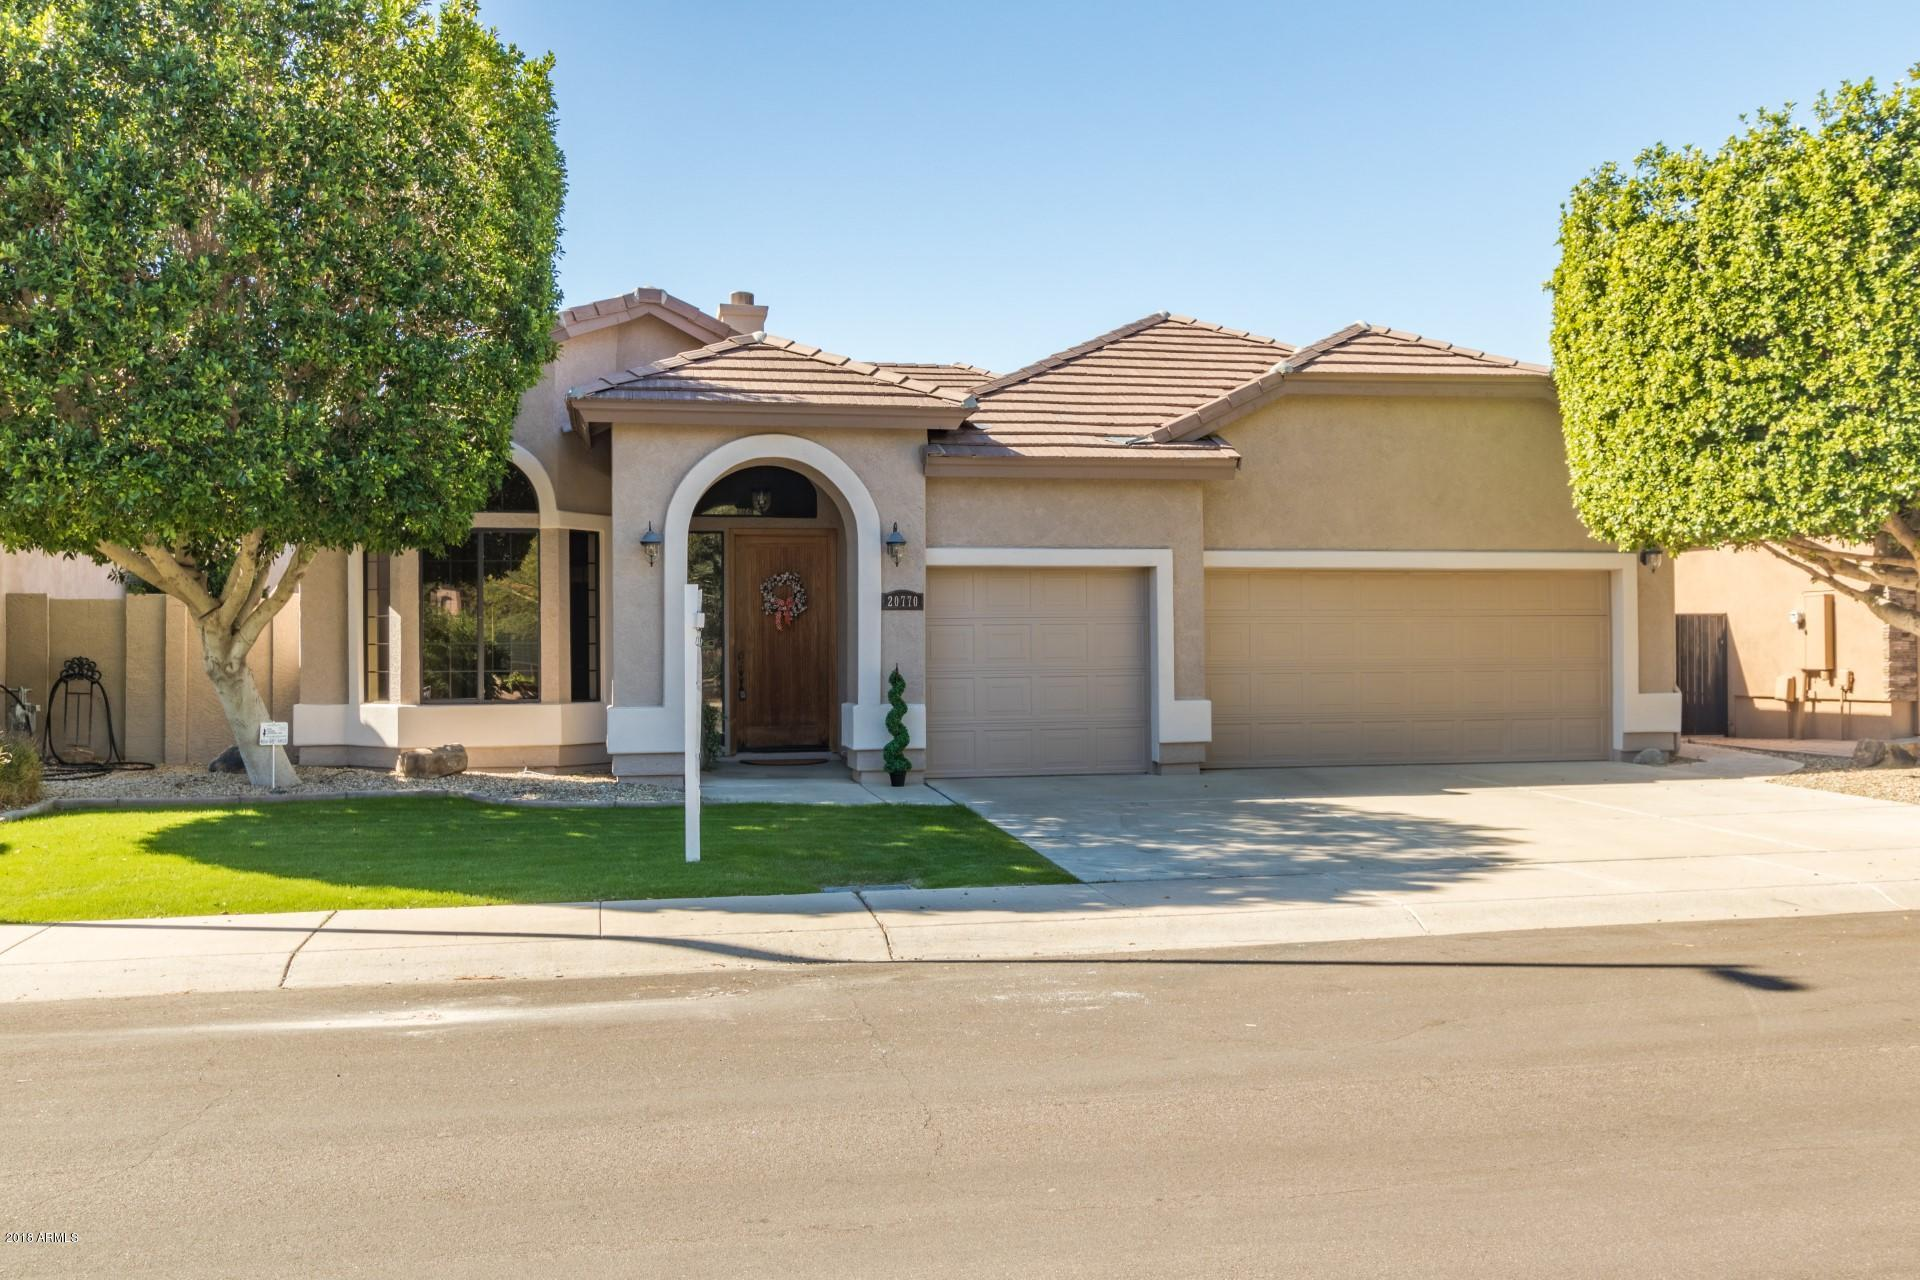 20770 N 56TH AVENUE, GLENDALE, AZ 85308